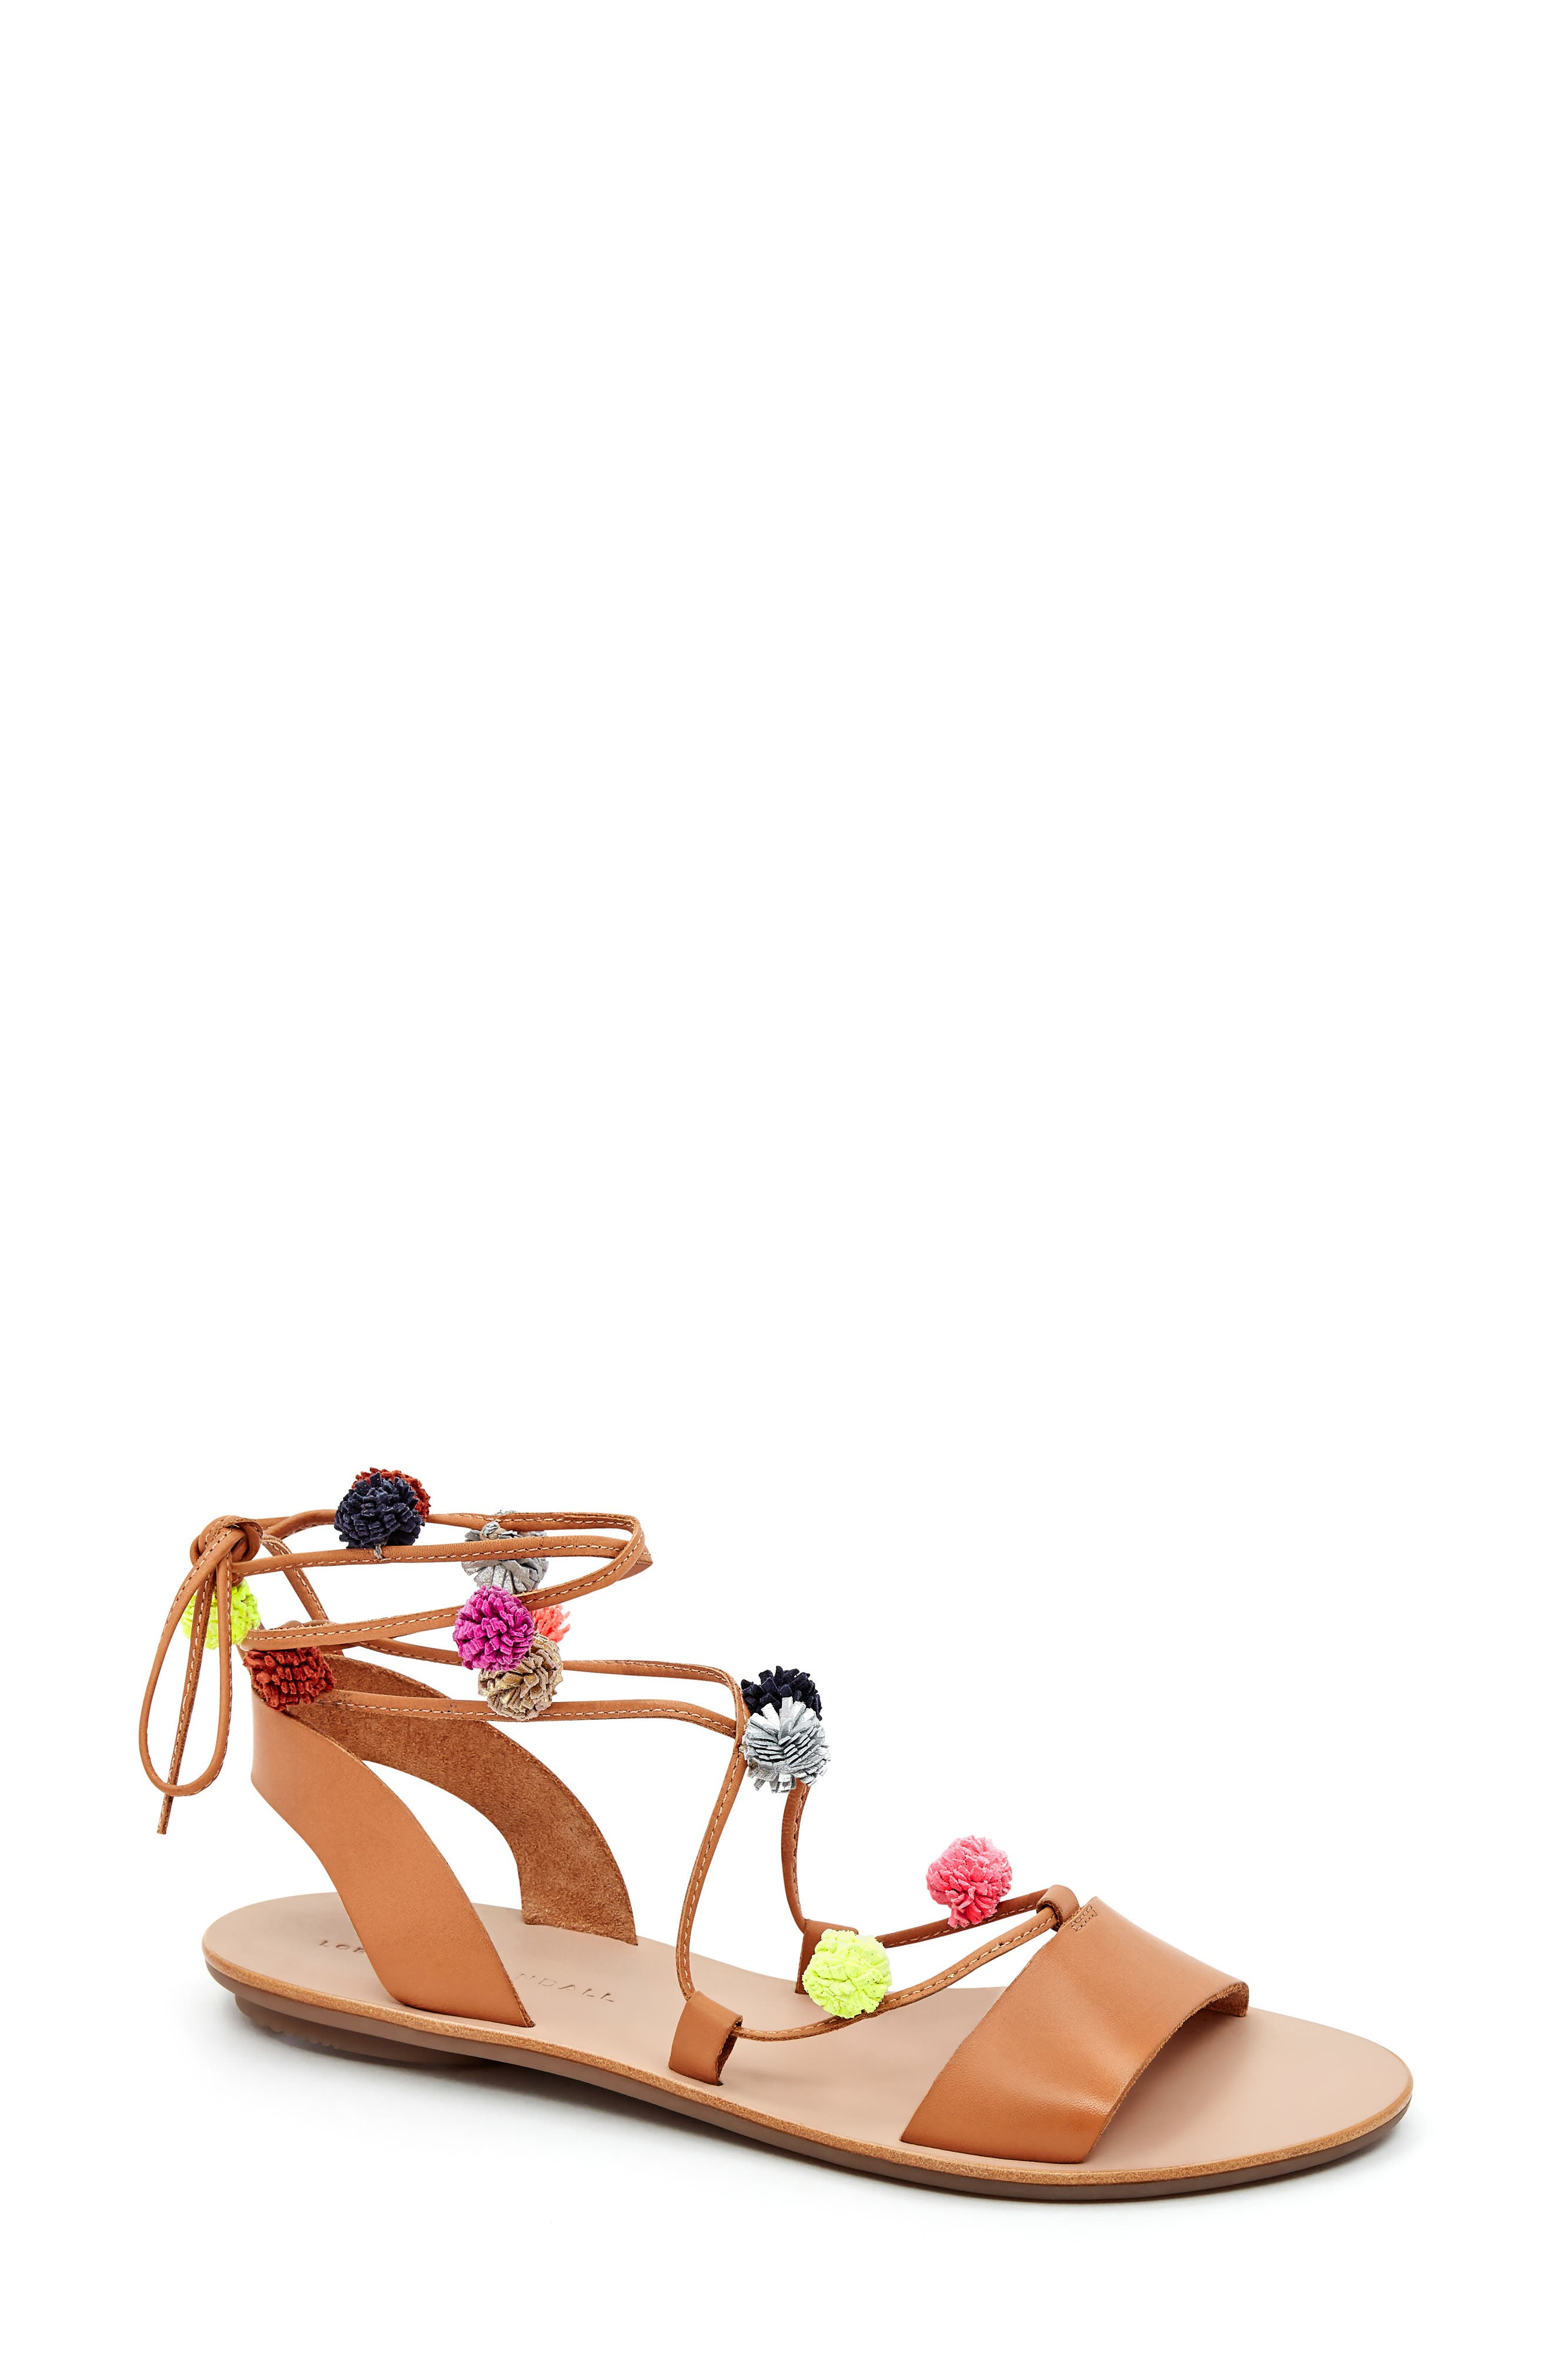 Alternate Image 1 Selected - Loeffler Randall 'Saskia' Flat Sandal (Women)